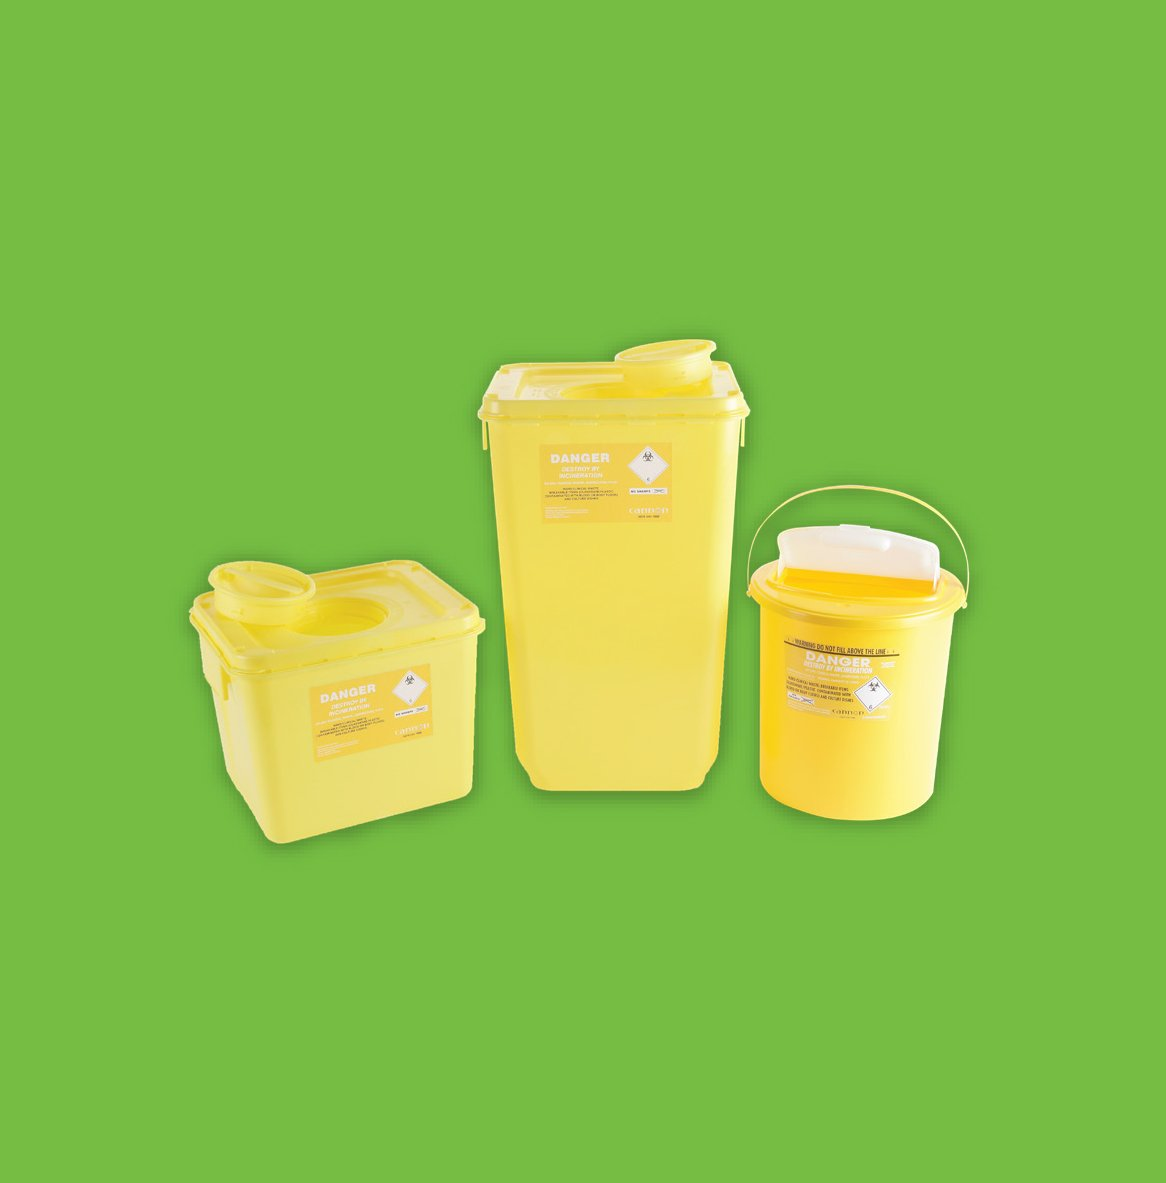 Hard Clinical Waste Disposal Units - Clinical Waste Disposal